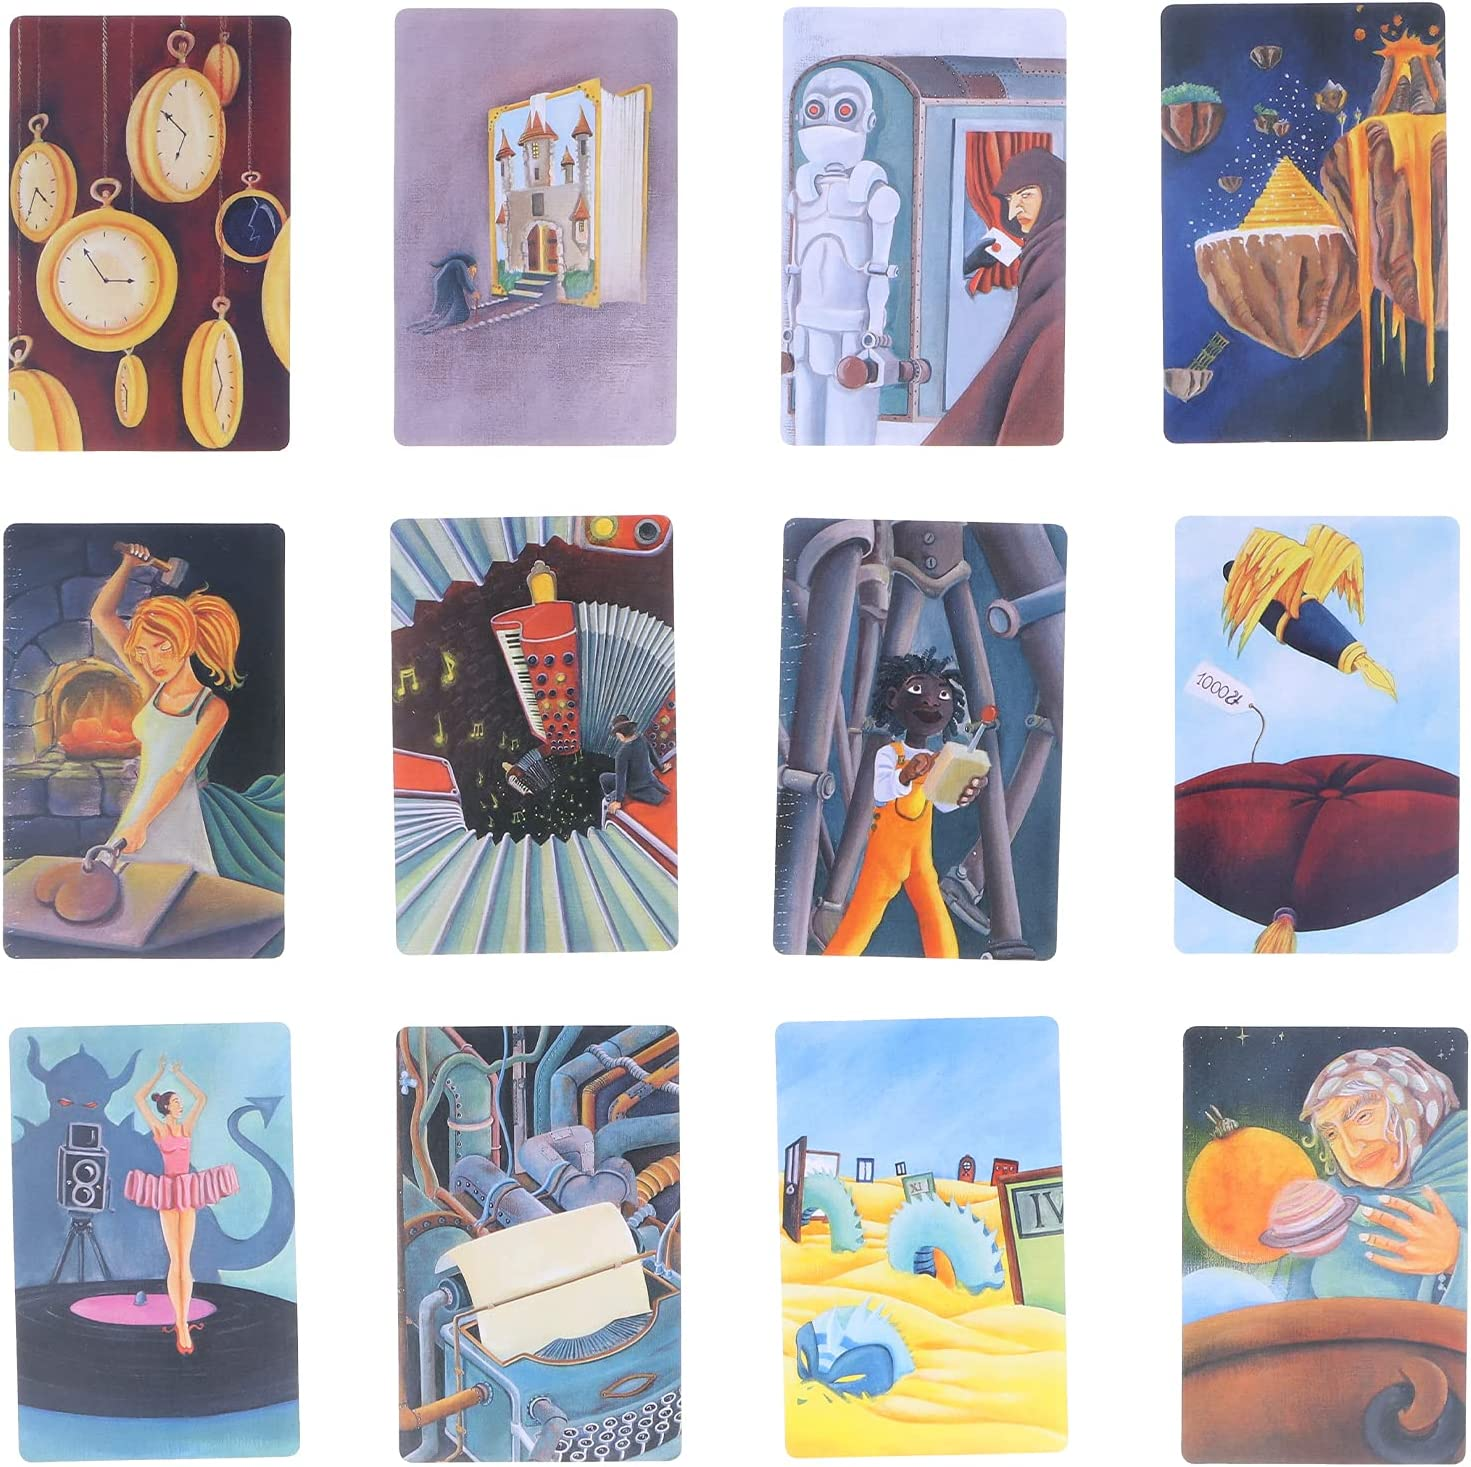 service HAOX Tarot Cards Set Games Party Fees free Card